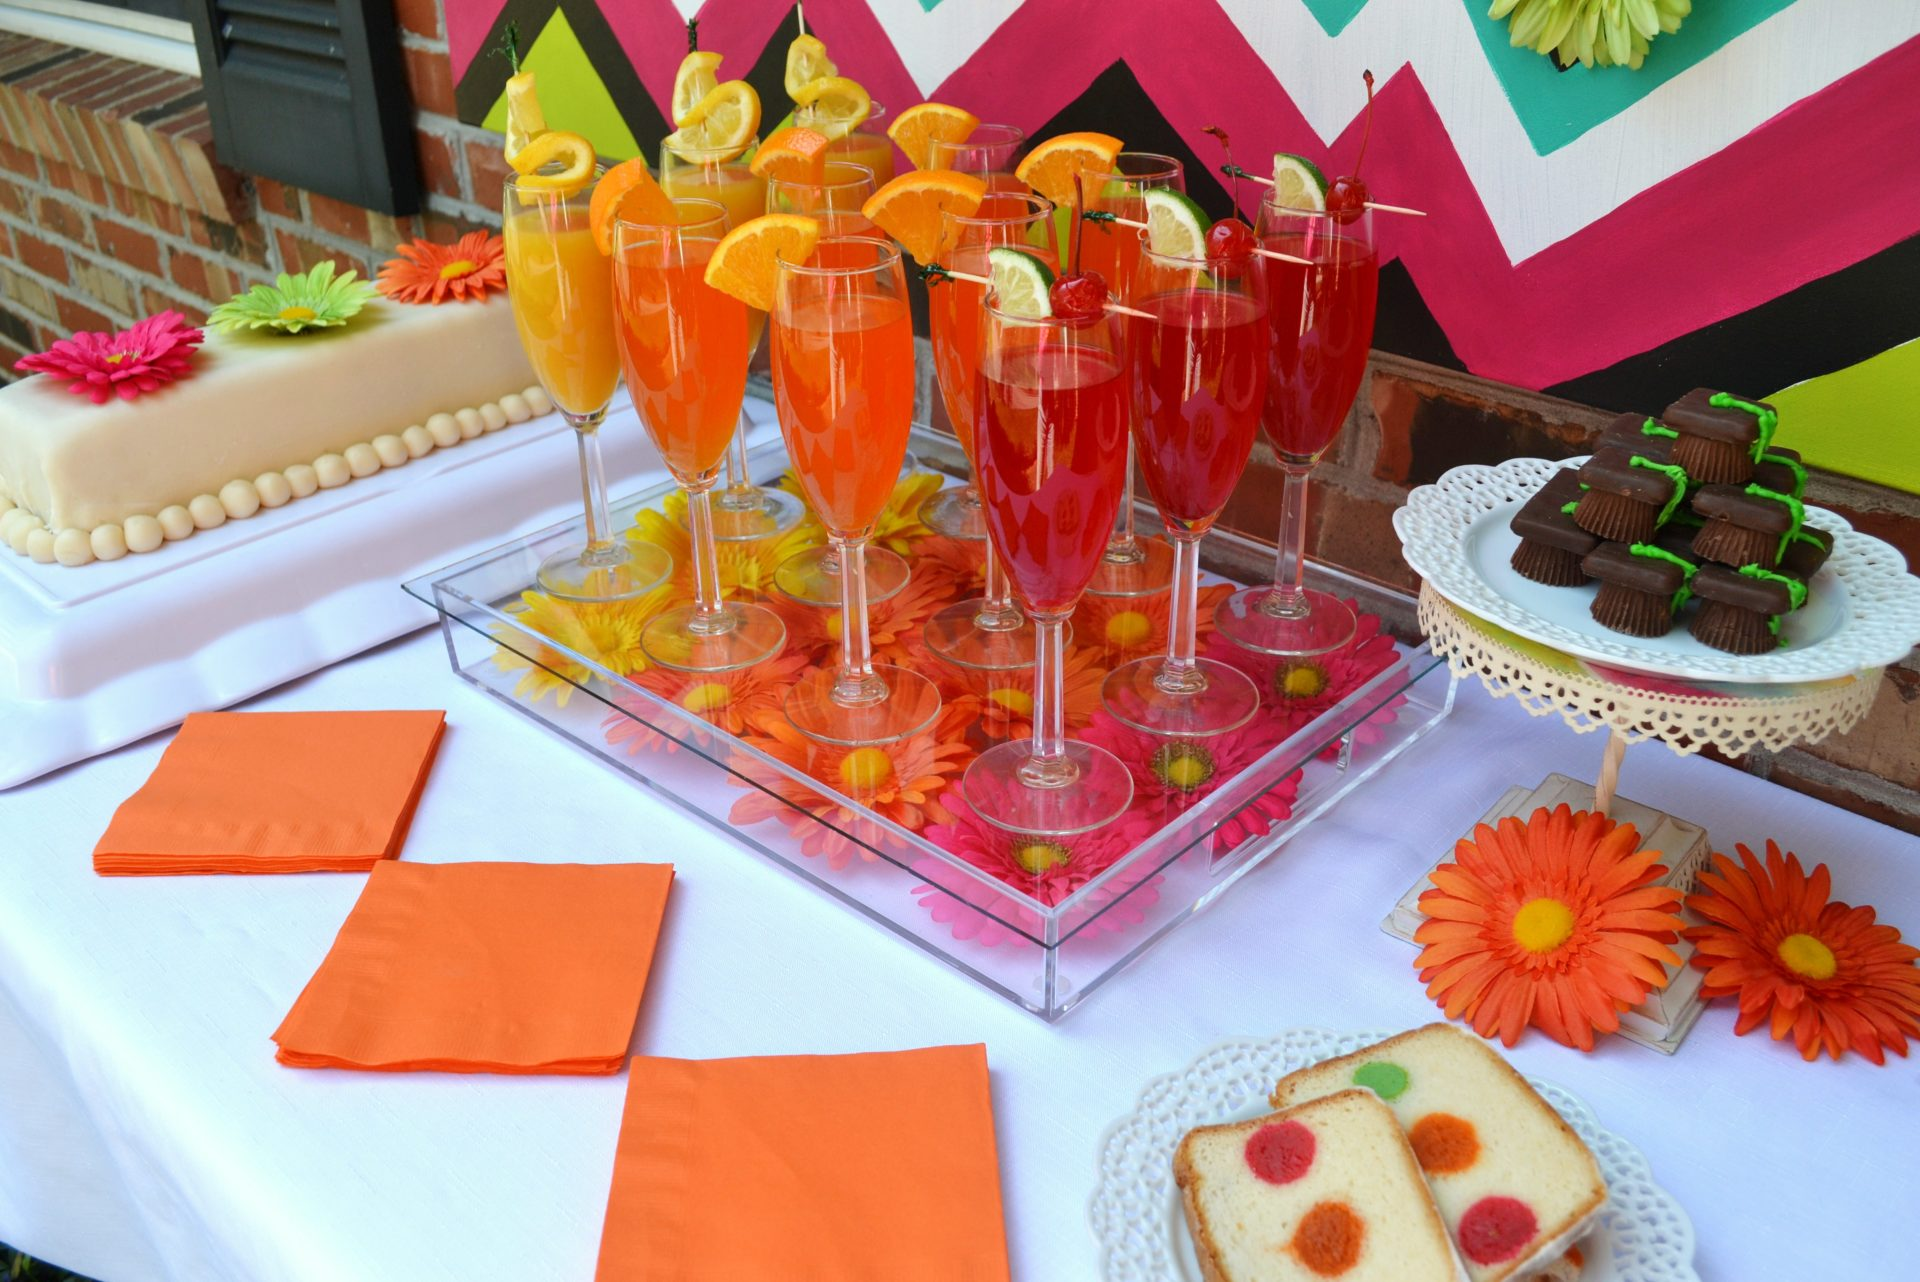 Create and host a Graduation Party with neon themed Gerber daisies, easy pick up foods and a brightly decorated table. This Graduation Party reception features a cake that is spot on with baked themed in color, cake balls inside the cake, triple lemonade and candy graduation caps.